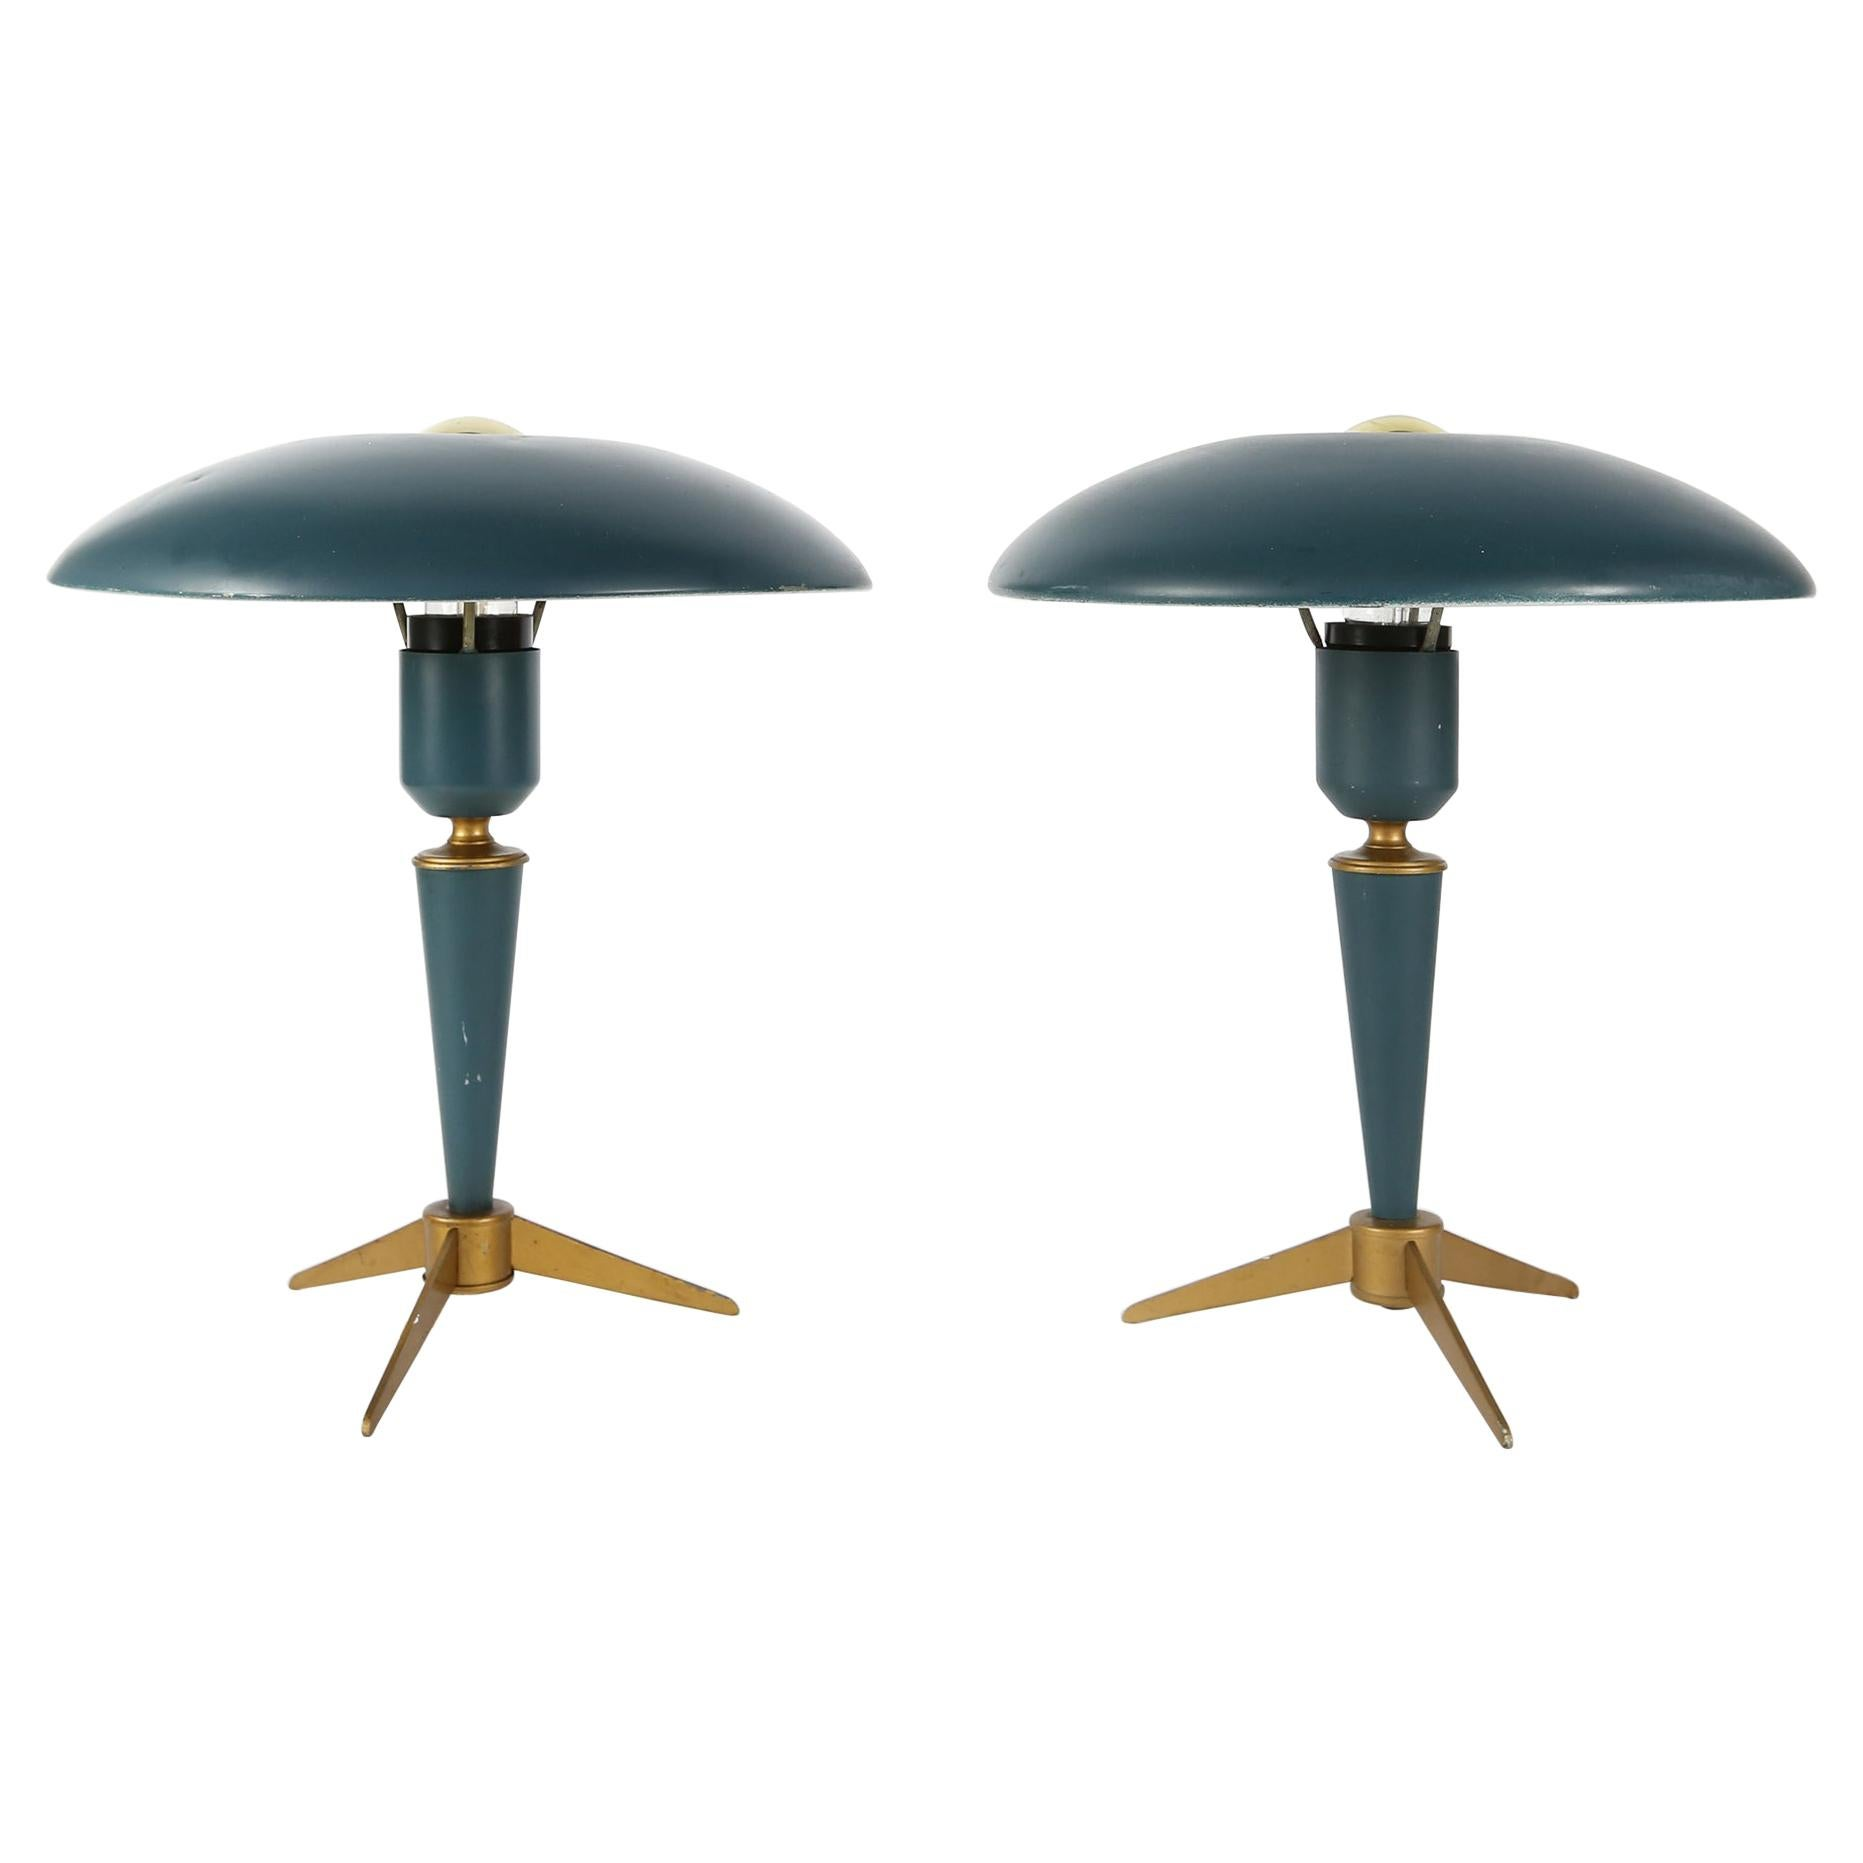 Pair of Expo 58 Tripod Desk Lamps by Louis Kalff for Philips, 1950s